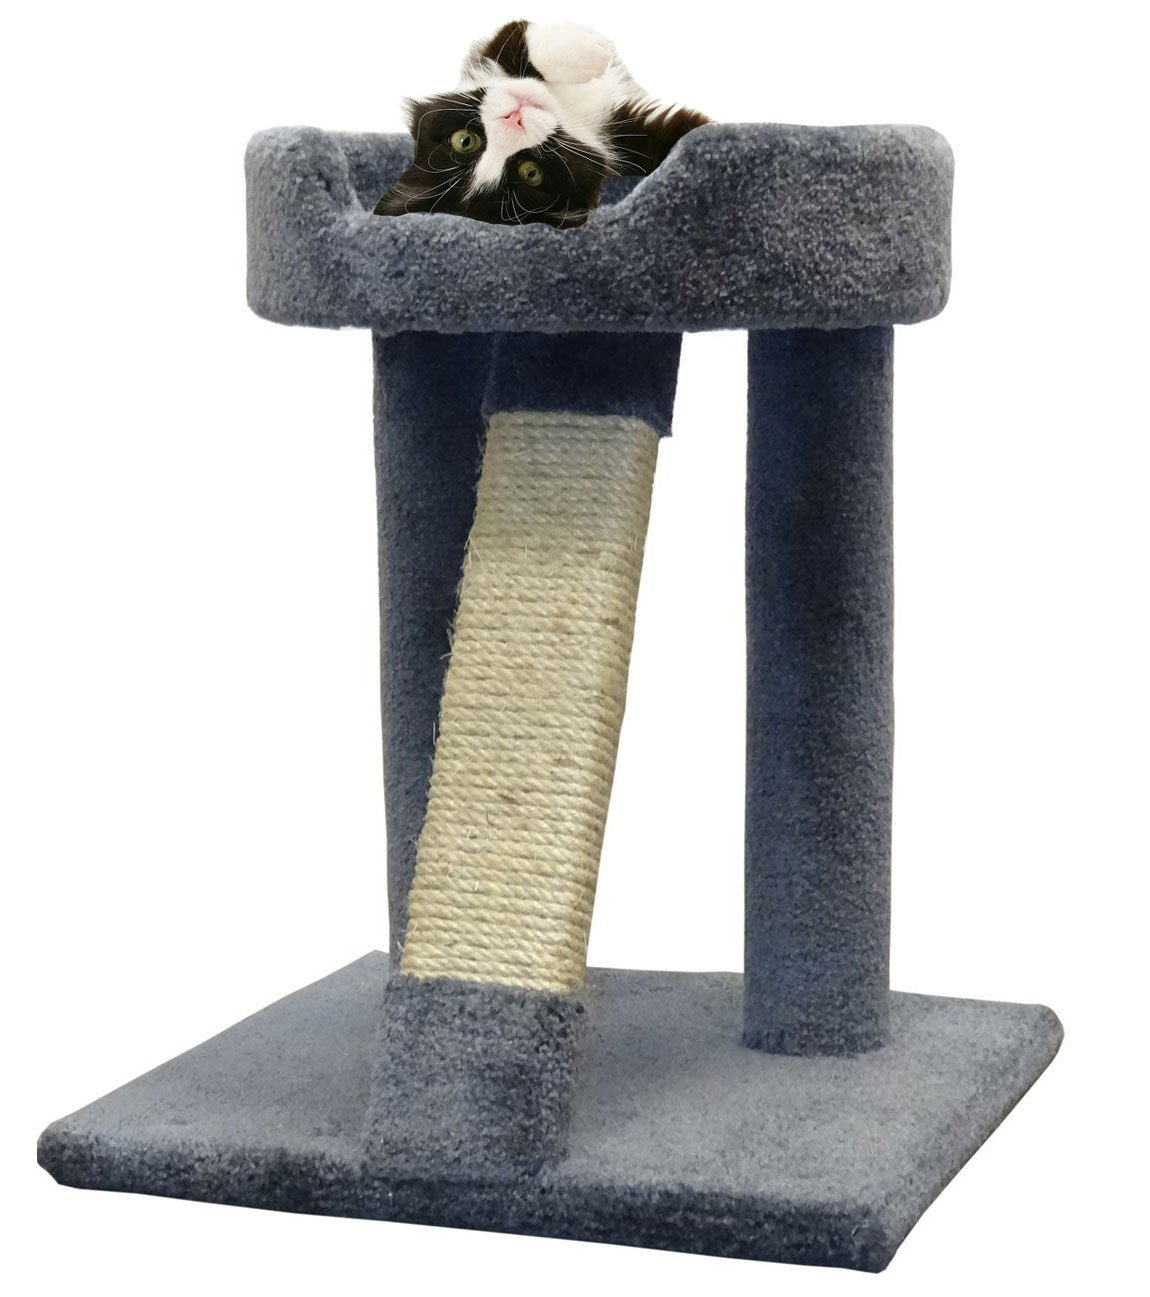 USA Made Wood Cat Scratching Post Bed Sisal Rope Carpet Cat Scratcher Pole in Gray